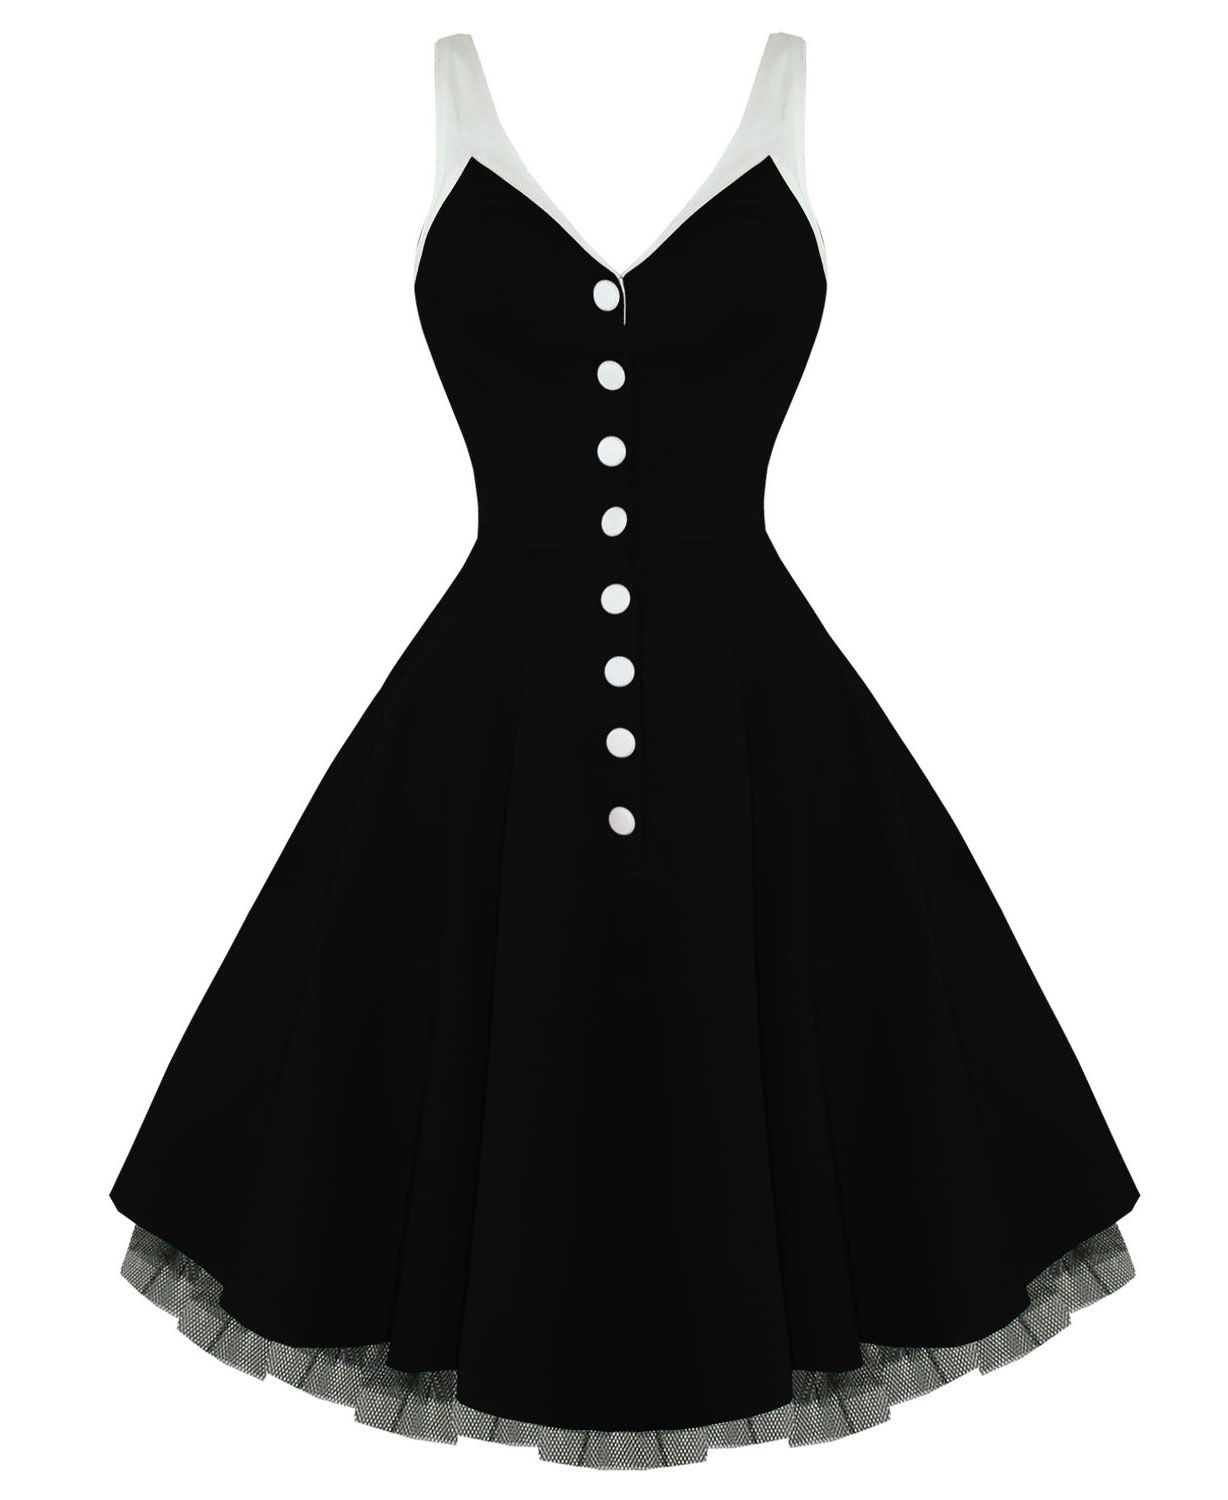 Sailor dream dress from hur london things that remind me of my ma